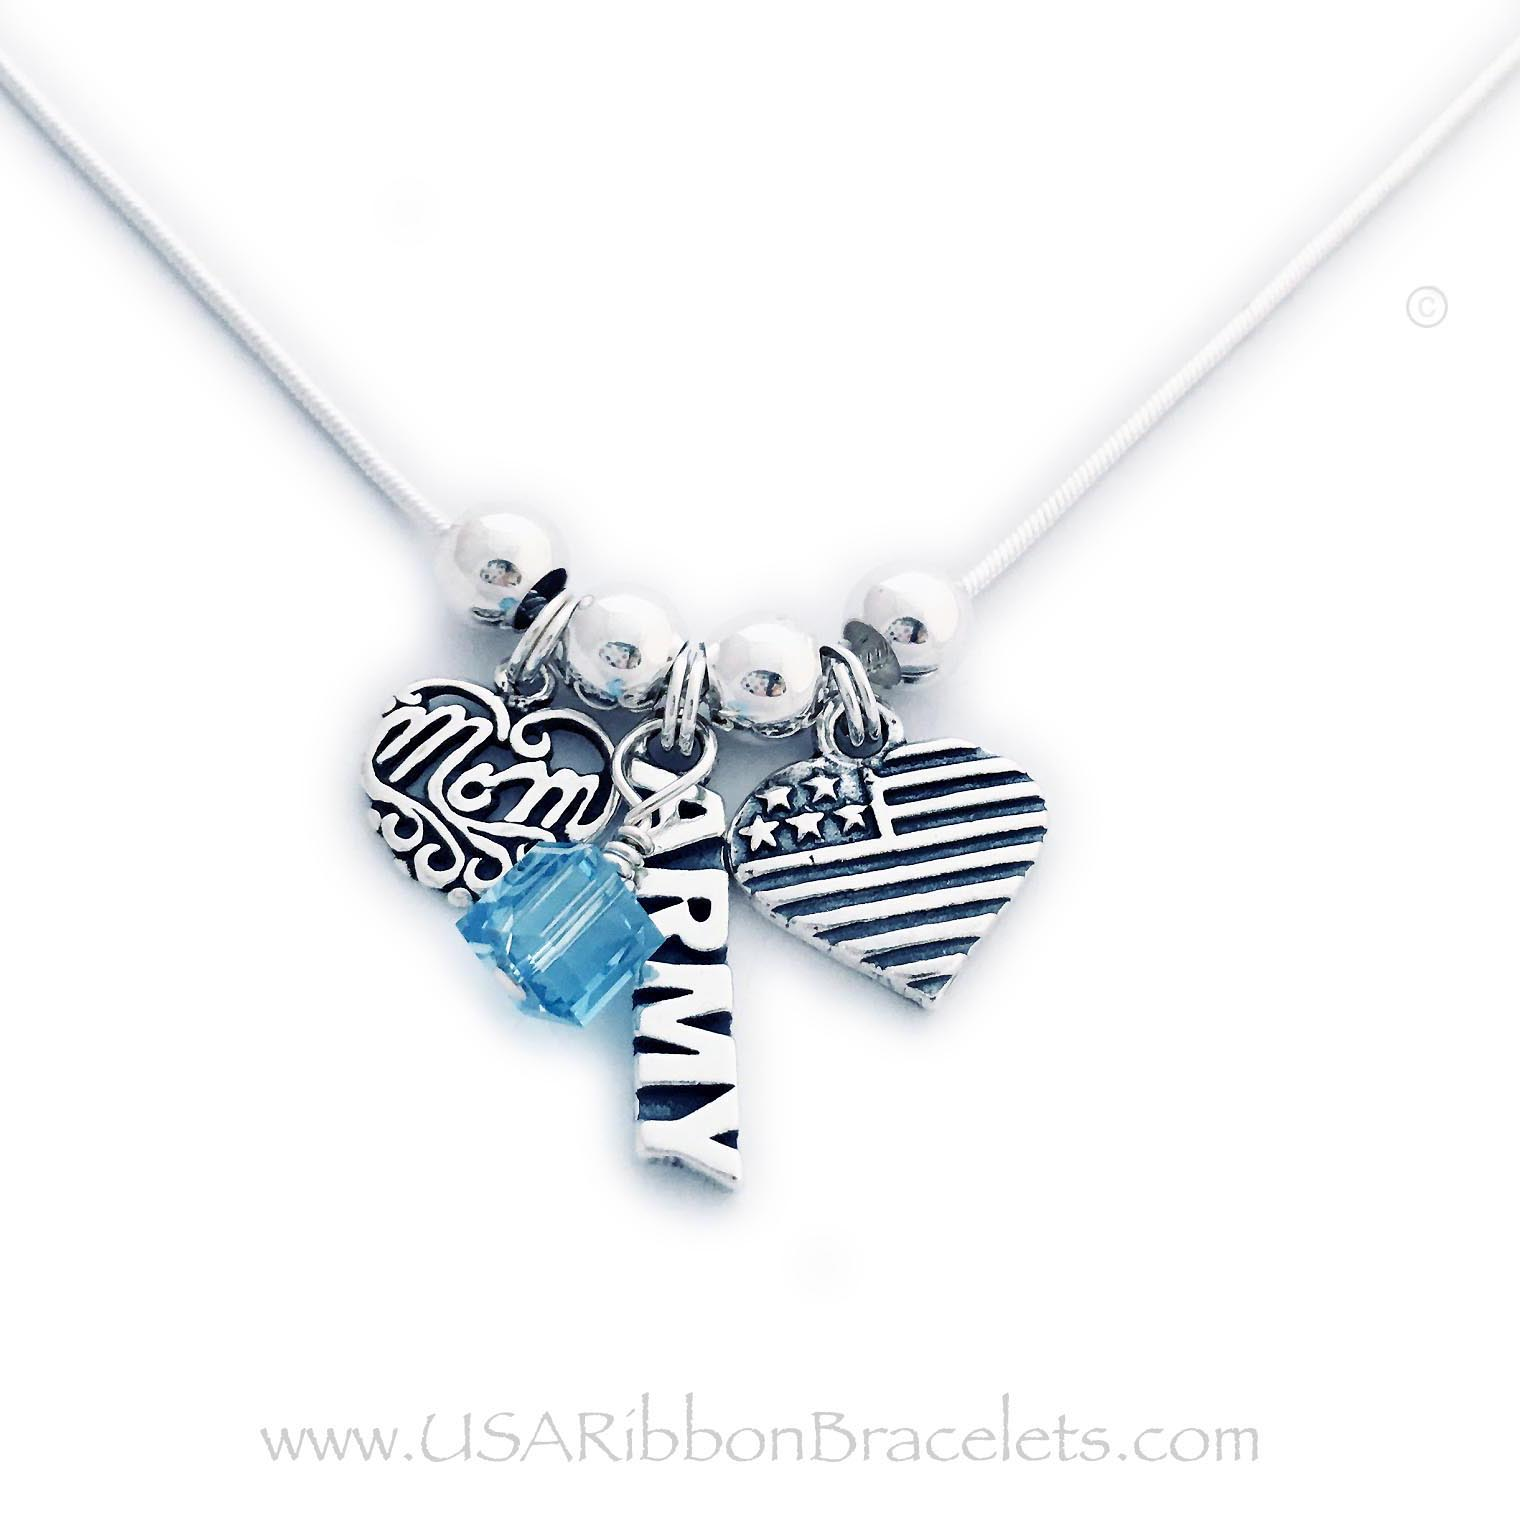 "USA-N8-Army with March Birthstone add-on Army Mom necklace comes with a Army charm, a MOM charm and a USA Heart Flag charm. Shown on a 18"" - .925 sterling silver snake chain. The Crystal Dangle is an add-on. (March or Aquamarine Birthstone is shown)"